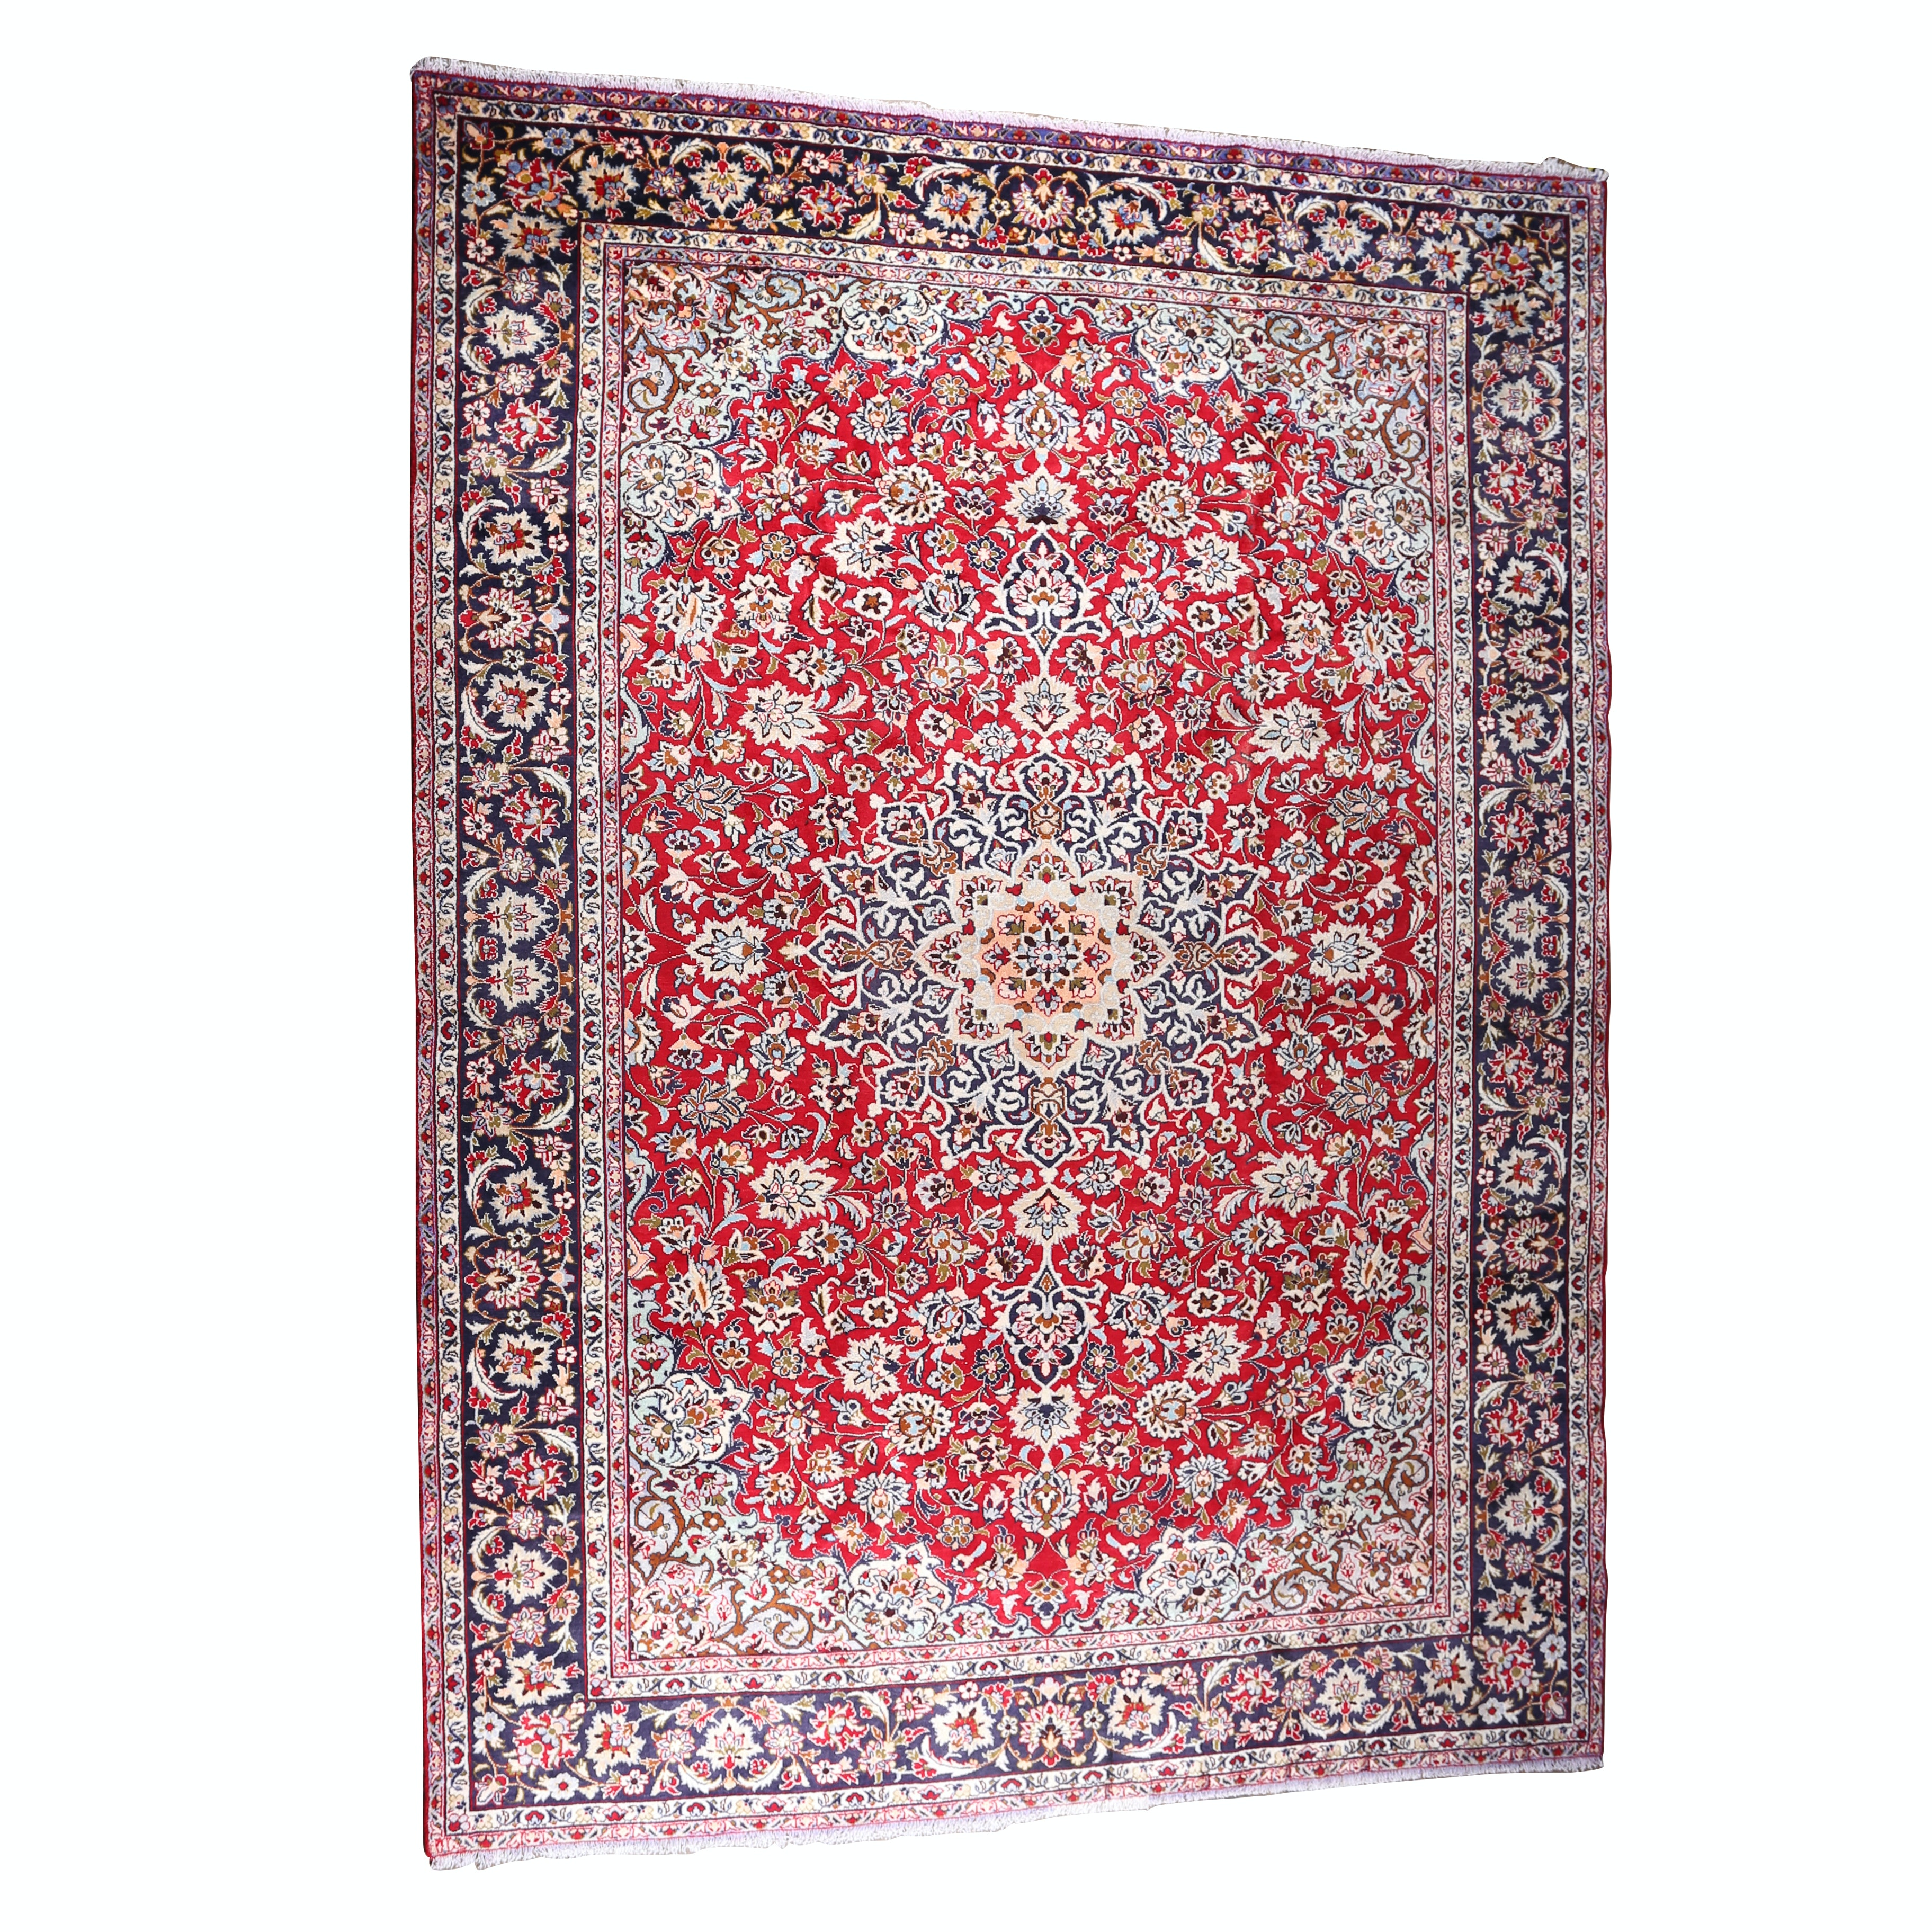 Hand-Knotted Persian Isfahan Room Size Wool Rug